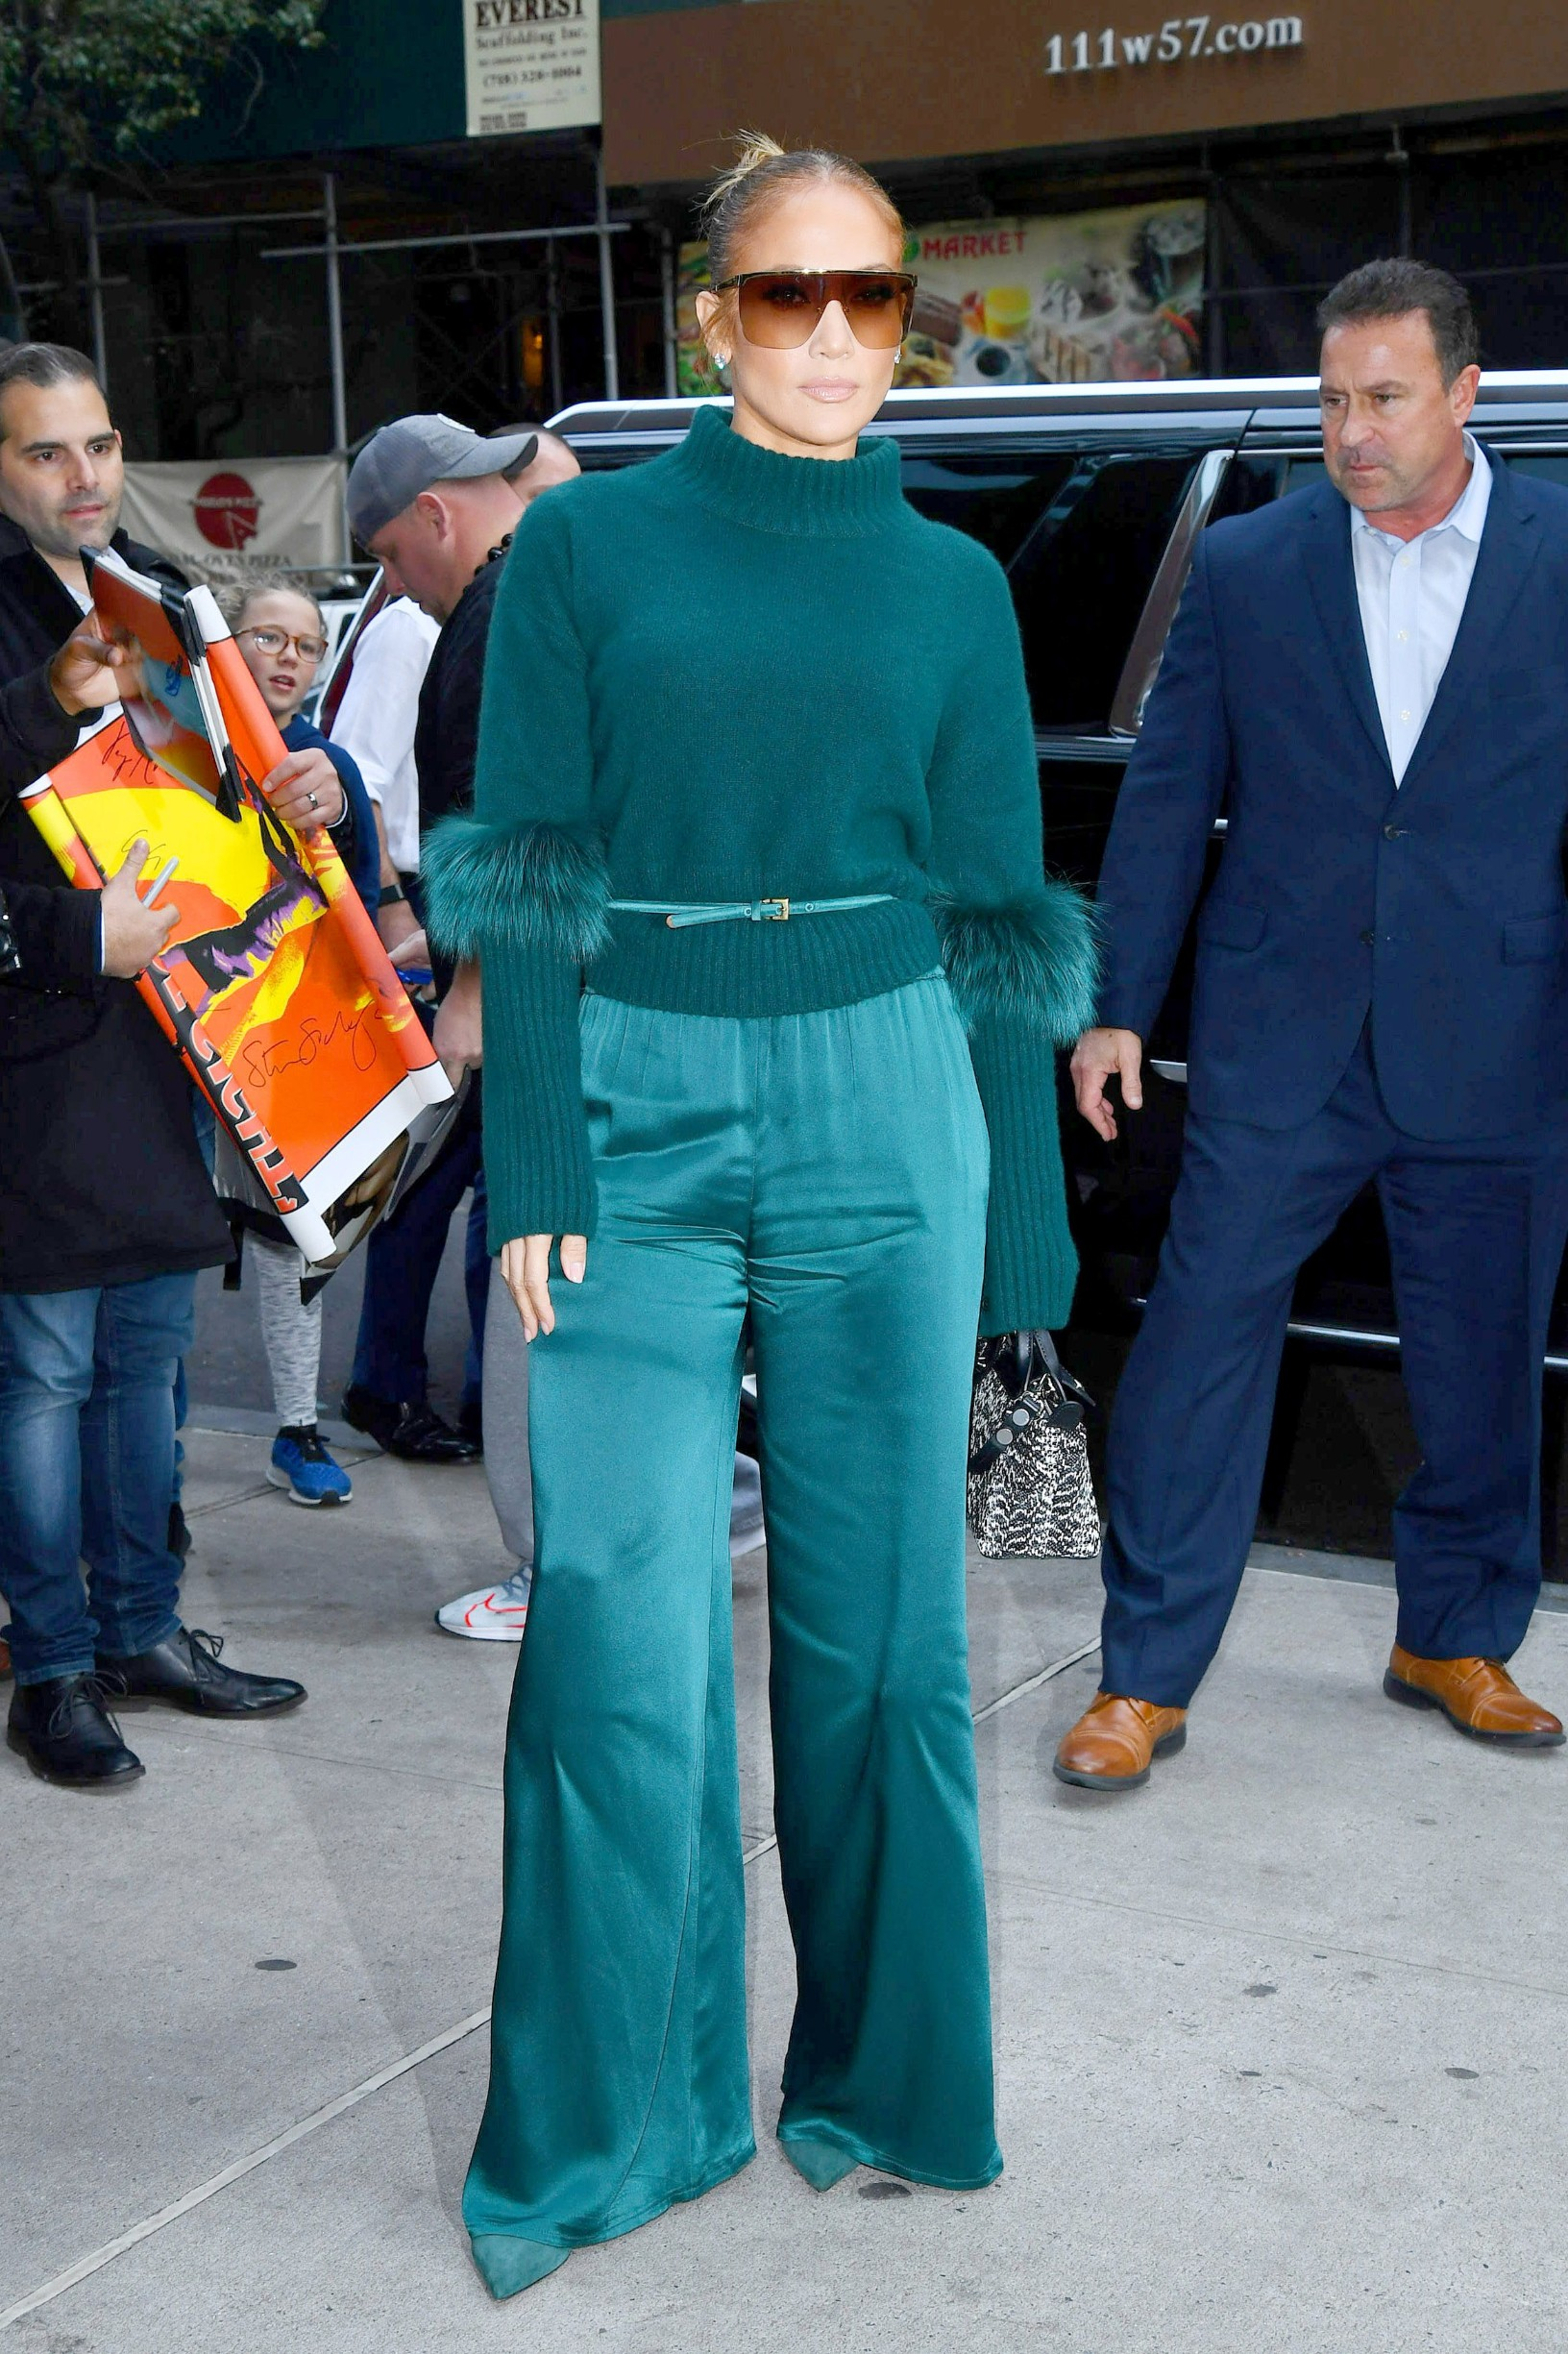 11/11/2019 Jennifer Lopez is pictured stepping out in New York City. The 50 year old actress and pop star wore a green sweater paired with matching silk bell bottom trousers., Image: 482326319, License: Rights-managed, Restrictions: NO usage without agreed price and terms. Please contact sales@theimagedirect.com, Model Release: no, Credit line: TheImageDirect.com / The Image Direct / Profimedia